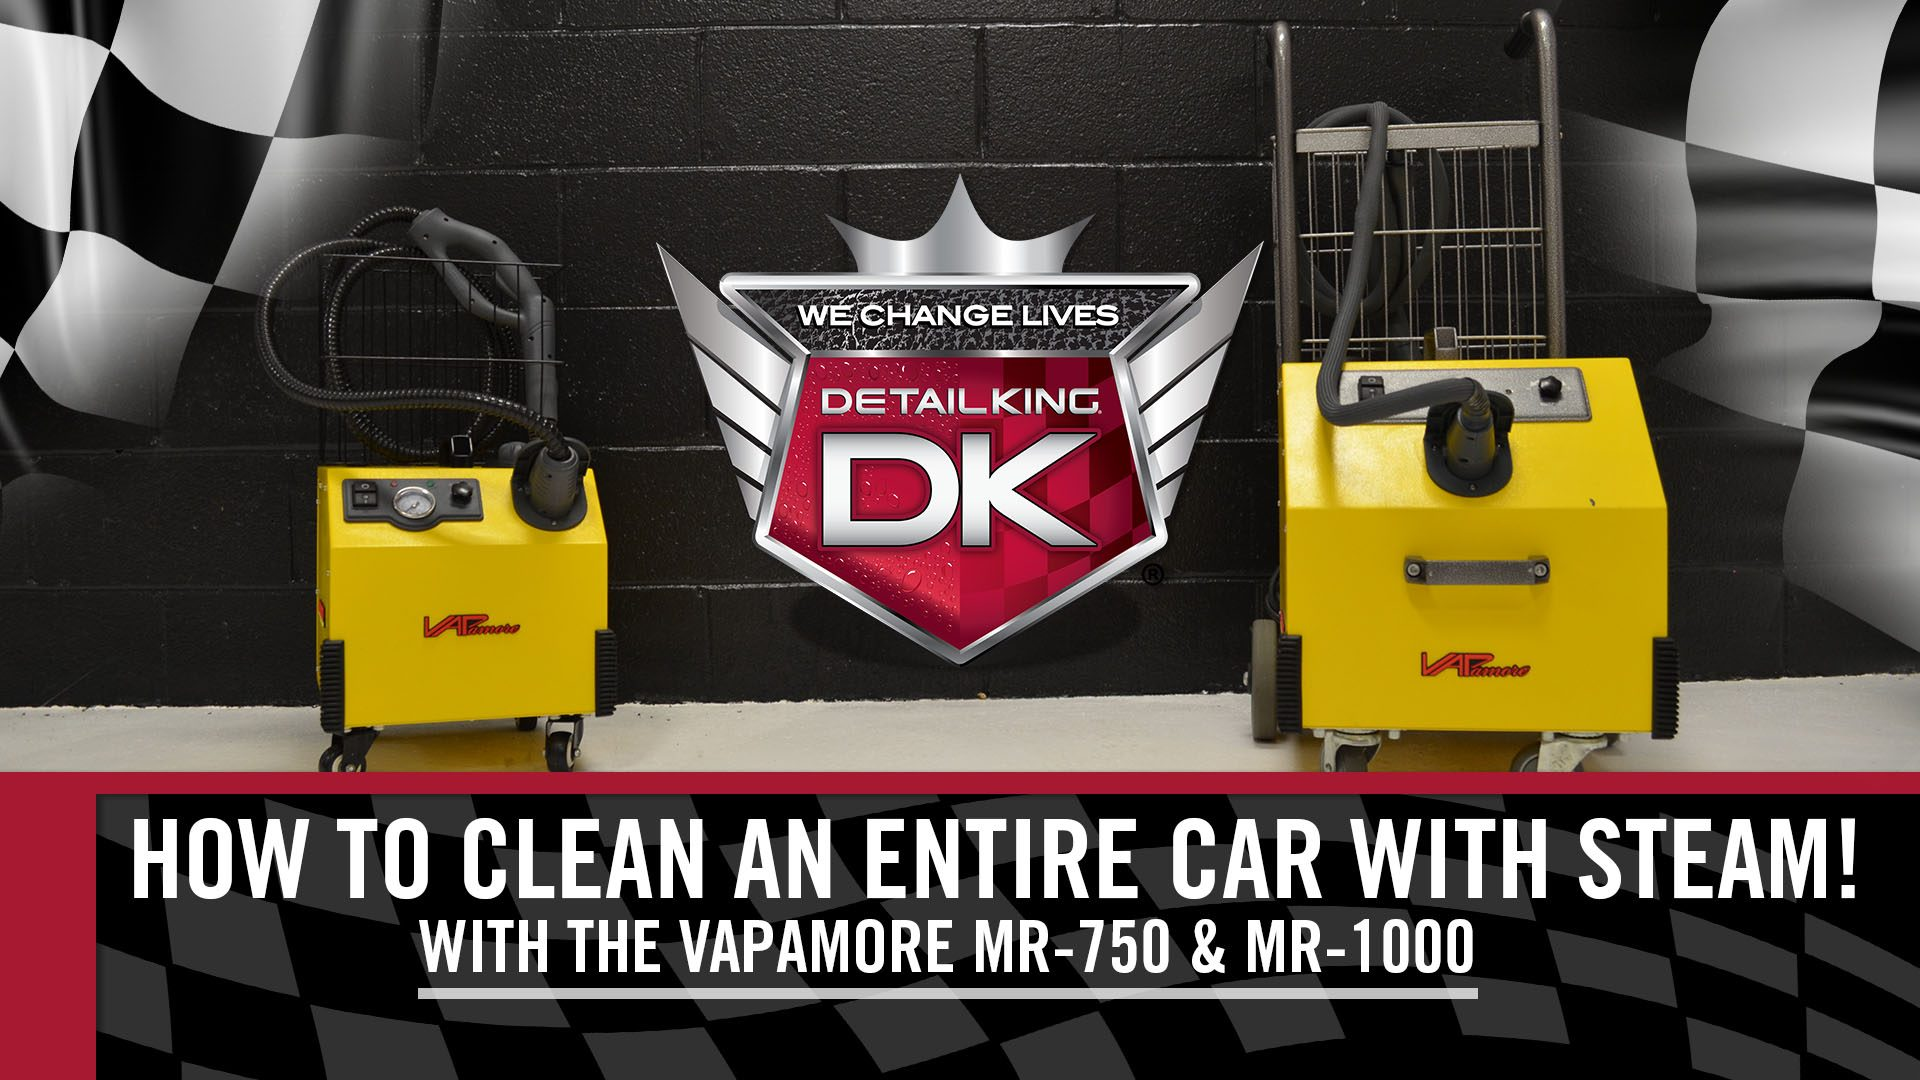 How To: Clean an ENTIRE Car with Steam using a Vapamore MR-750 & MR-1000